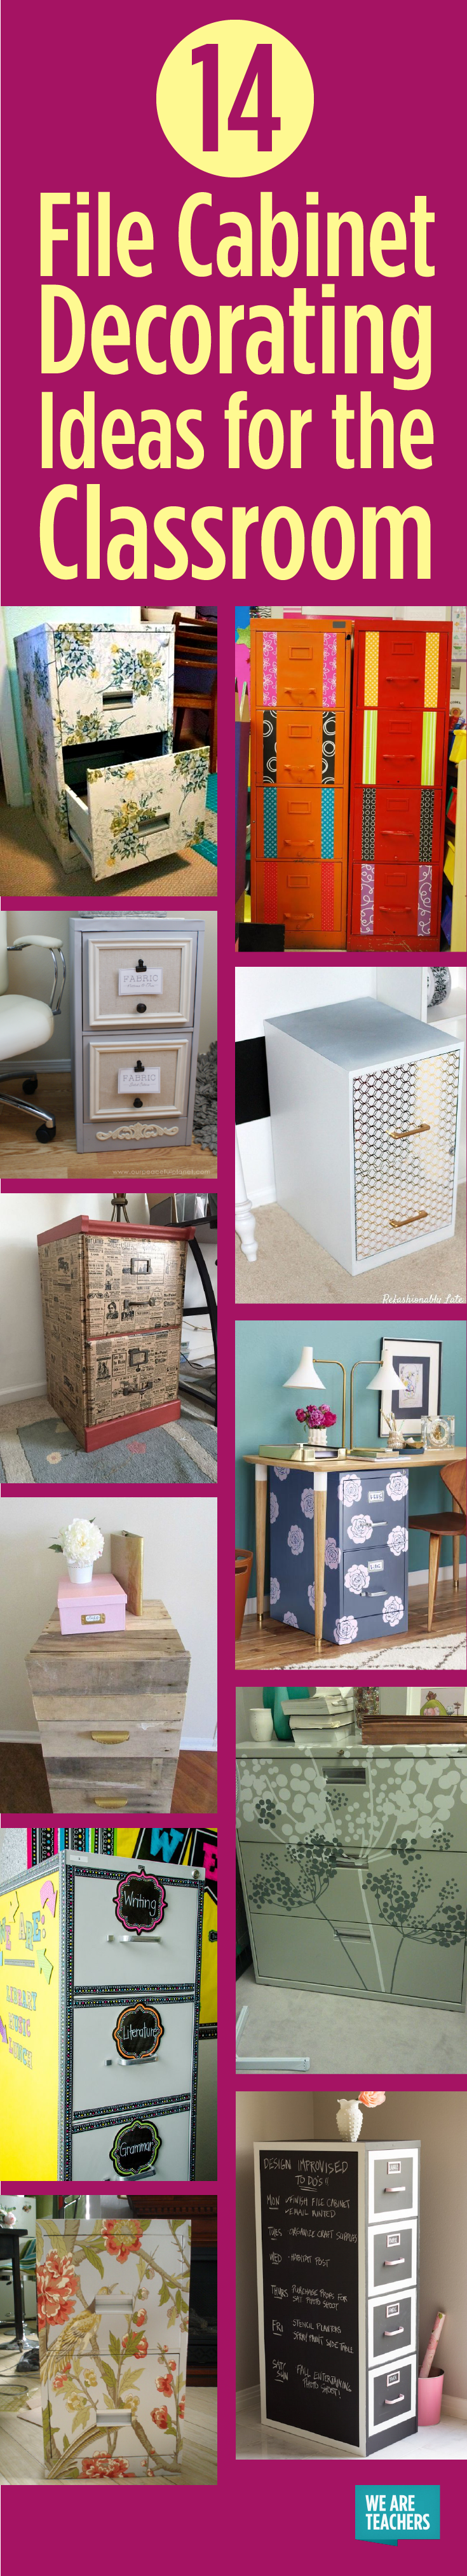 14 File Cabinet Decorating Ideas for the